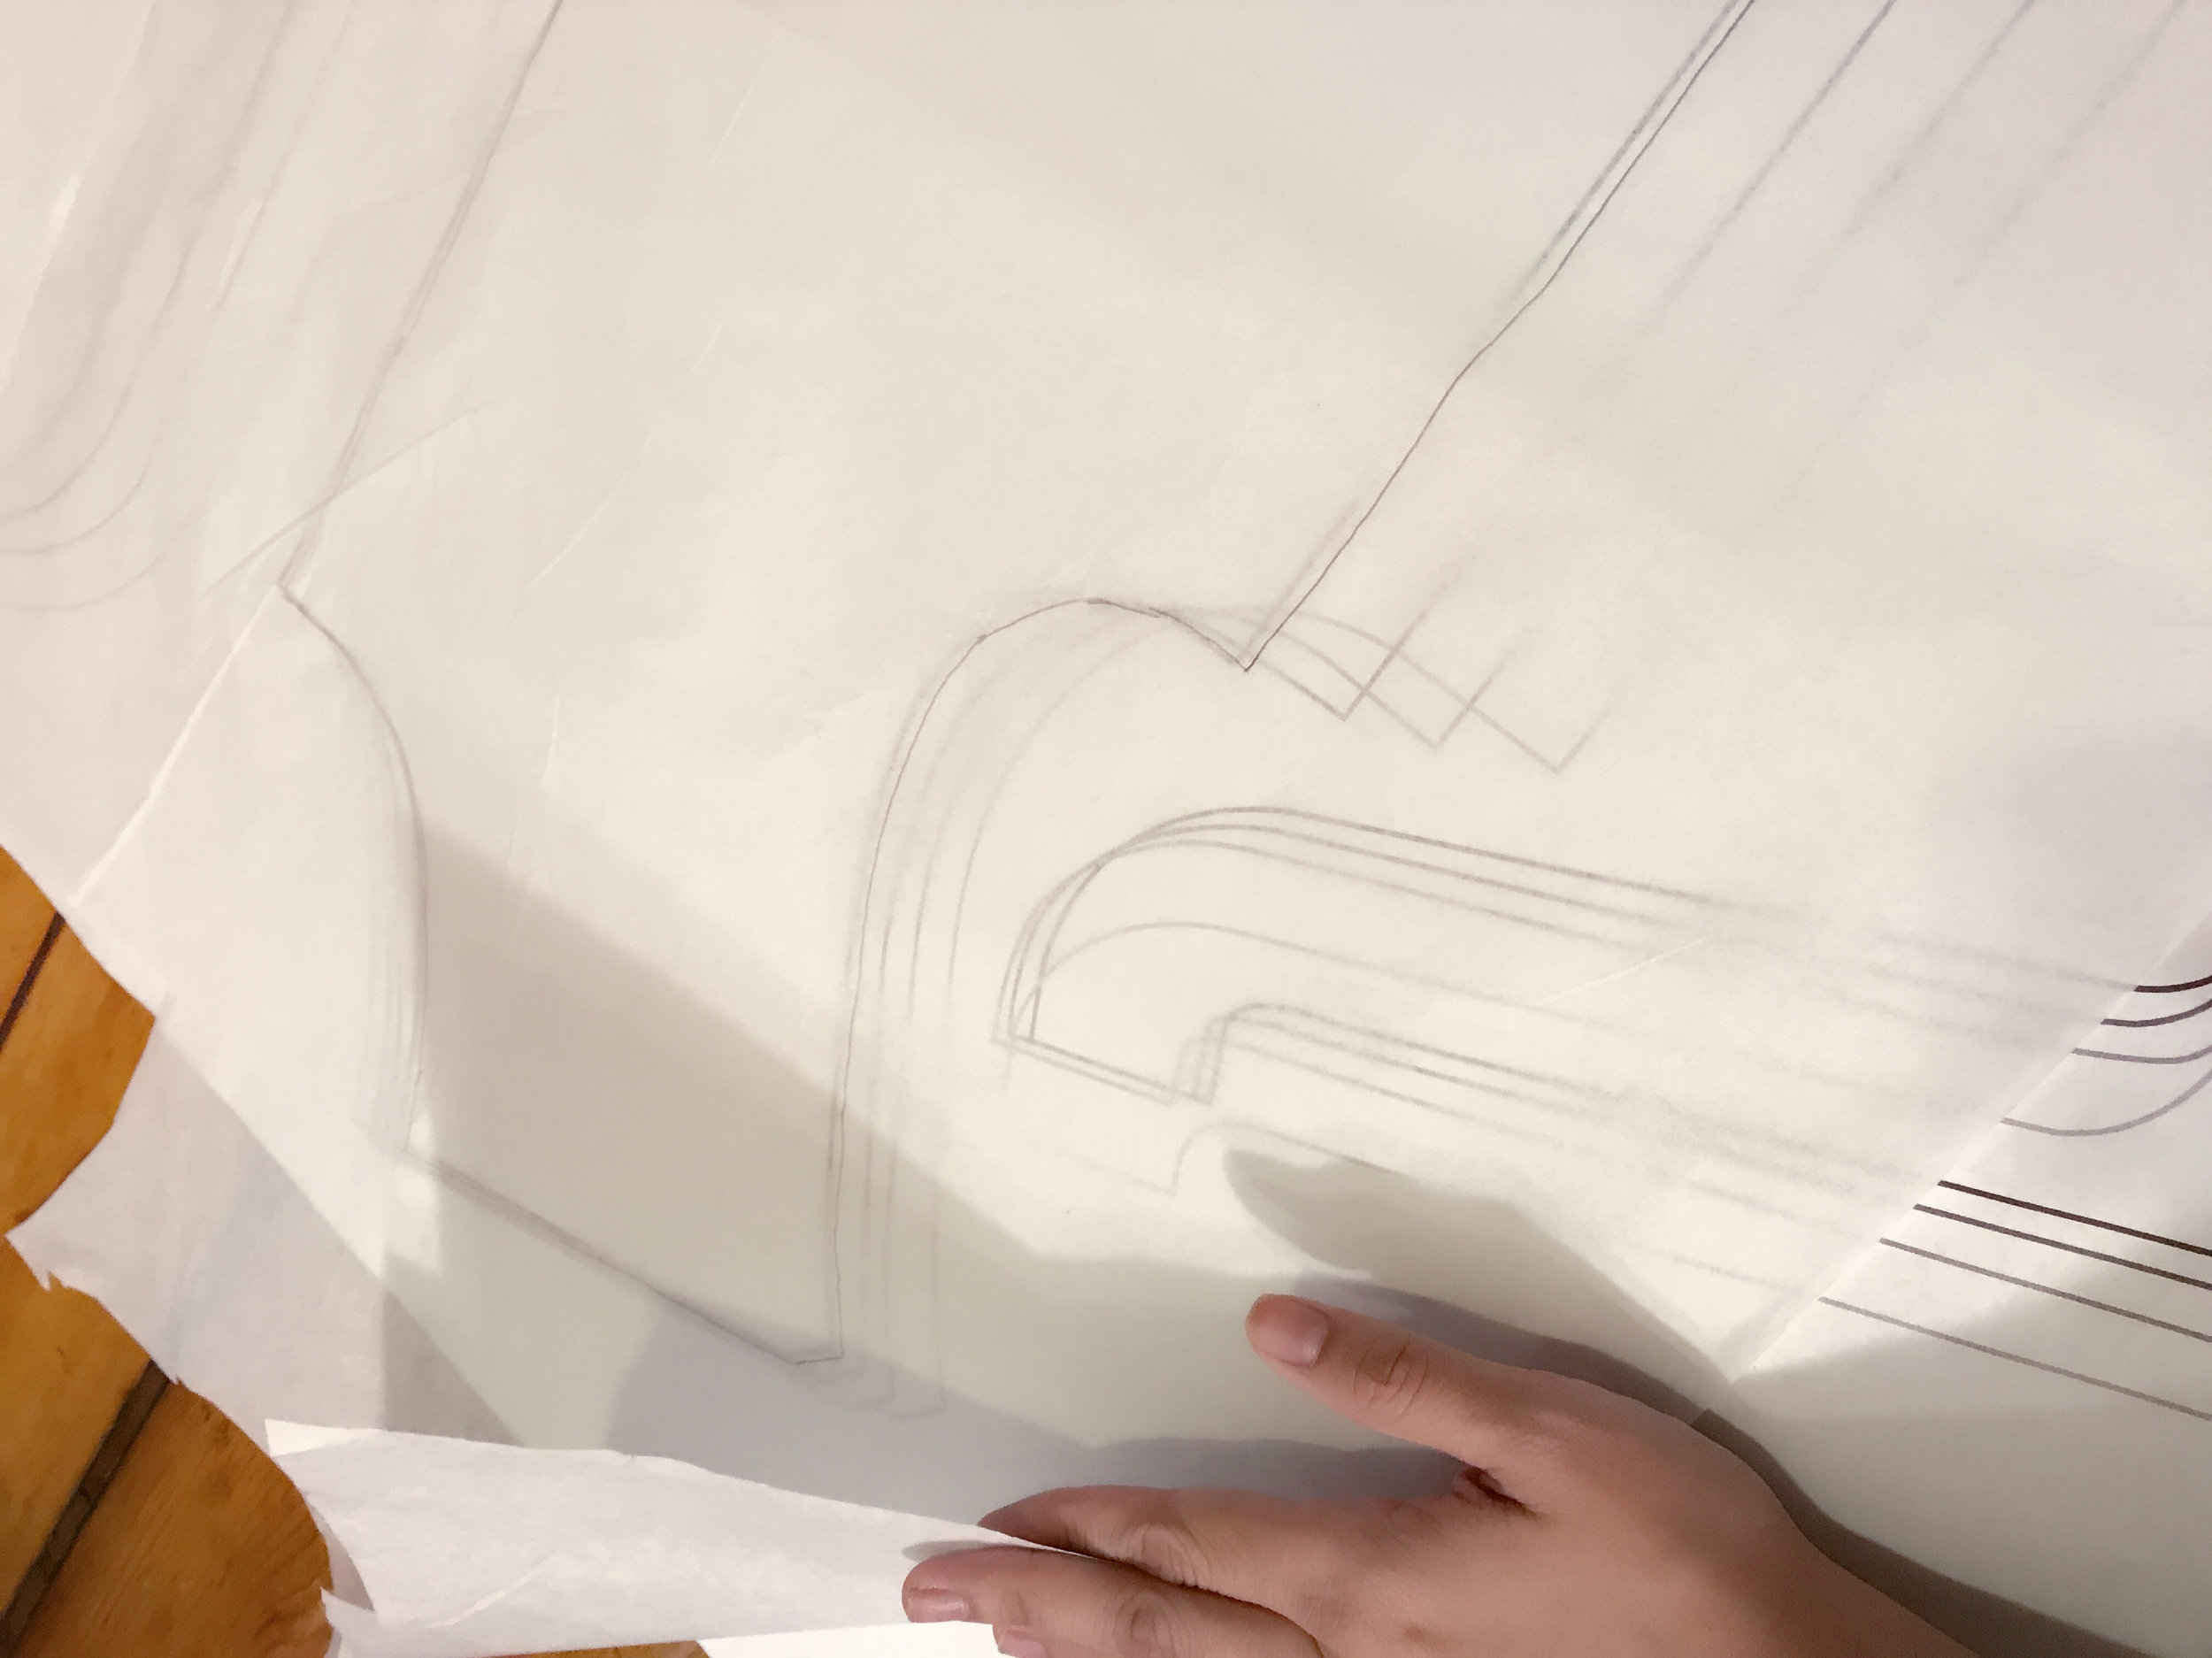 Tracing the original pattern on tissue paper